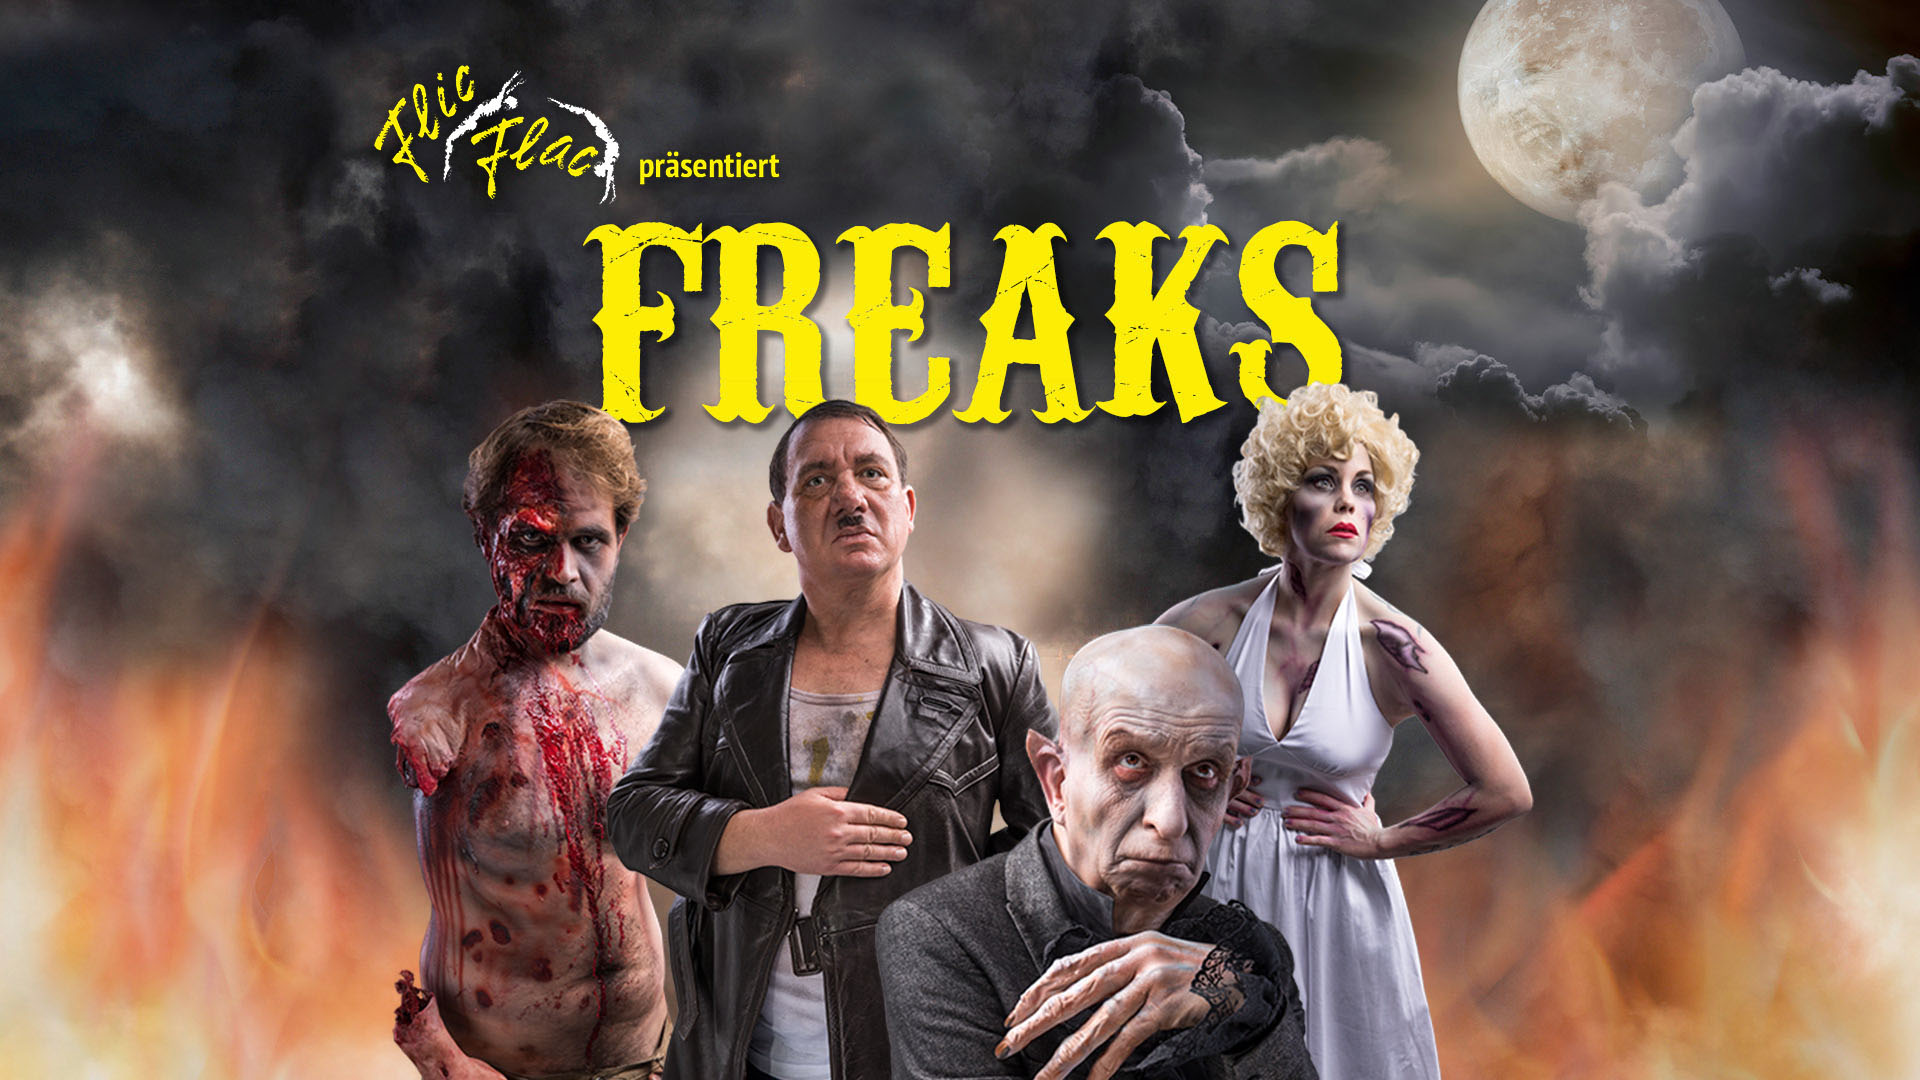 FREAKS - THE SHOW